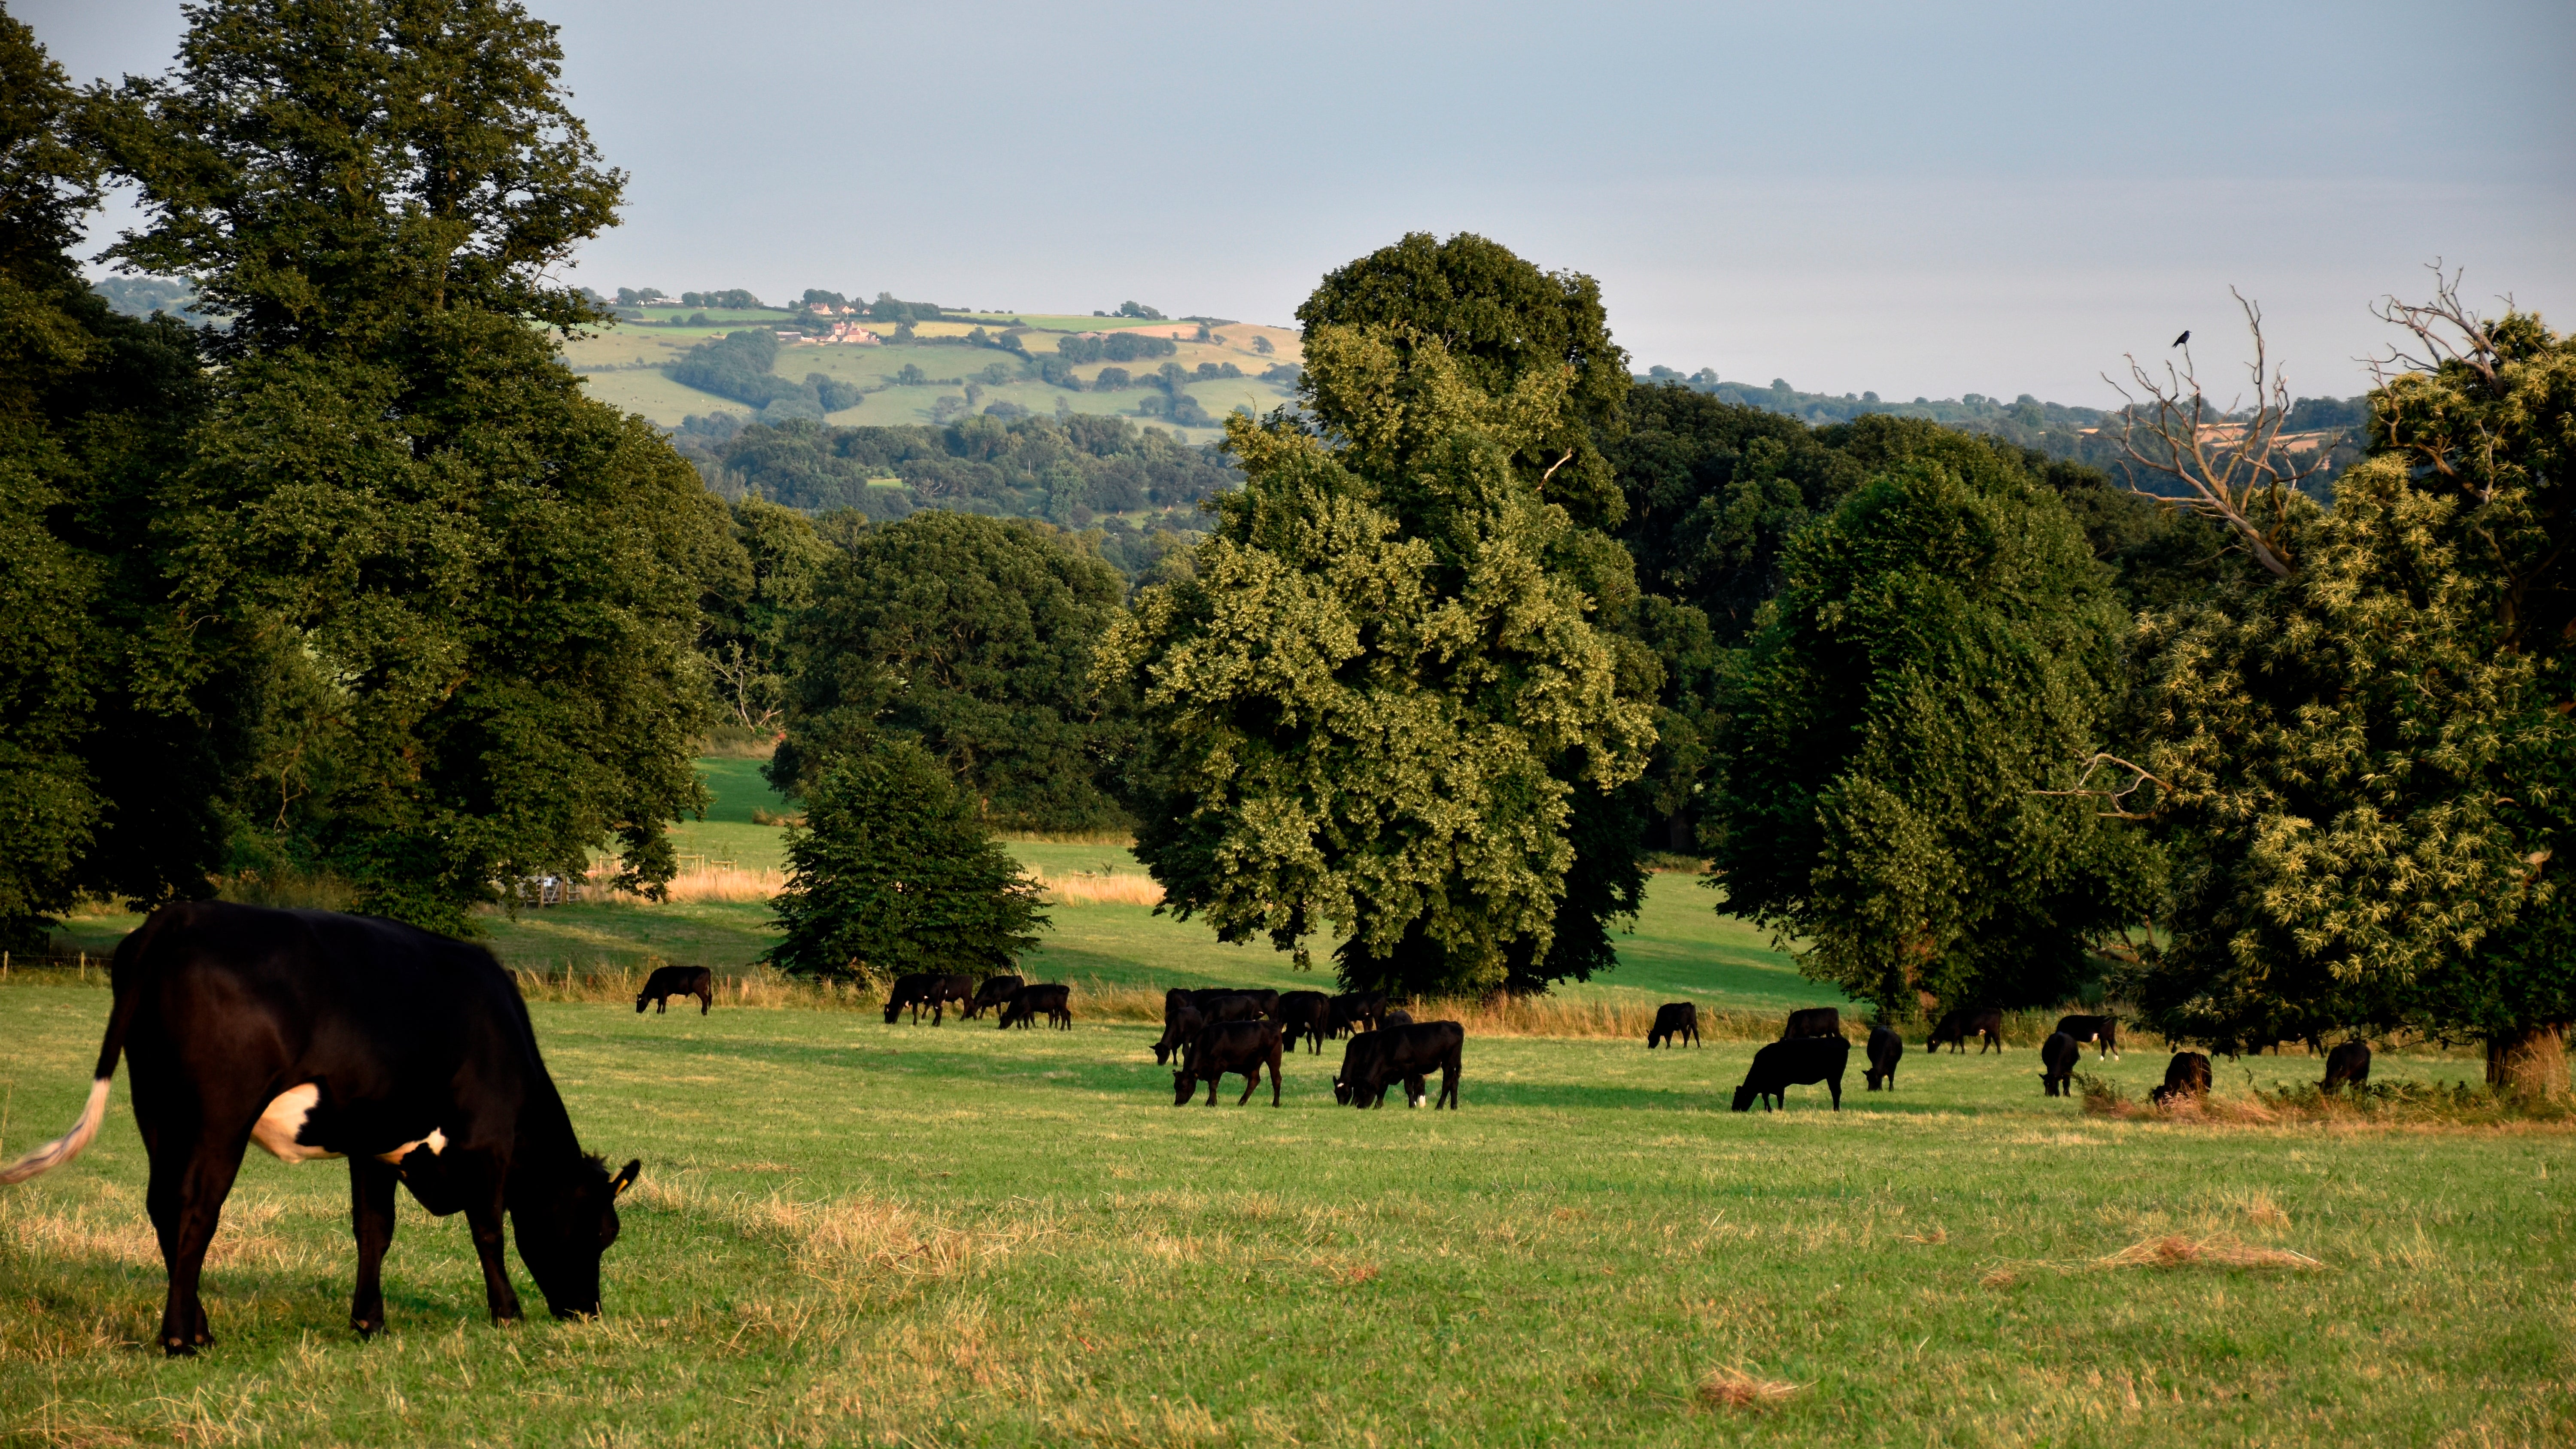 Grazing cows on the Tyntesfield estate